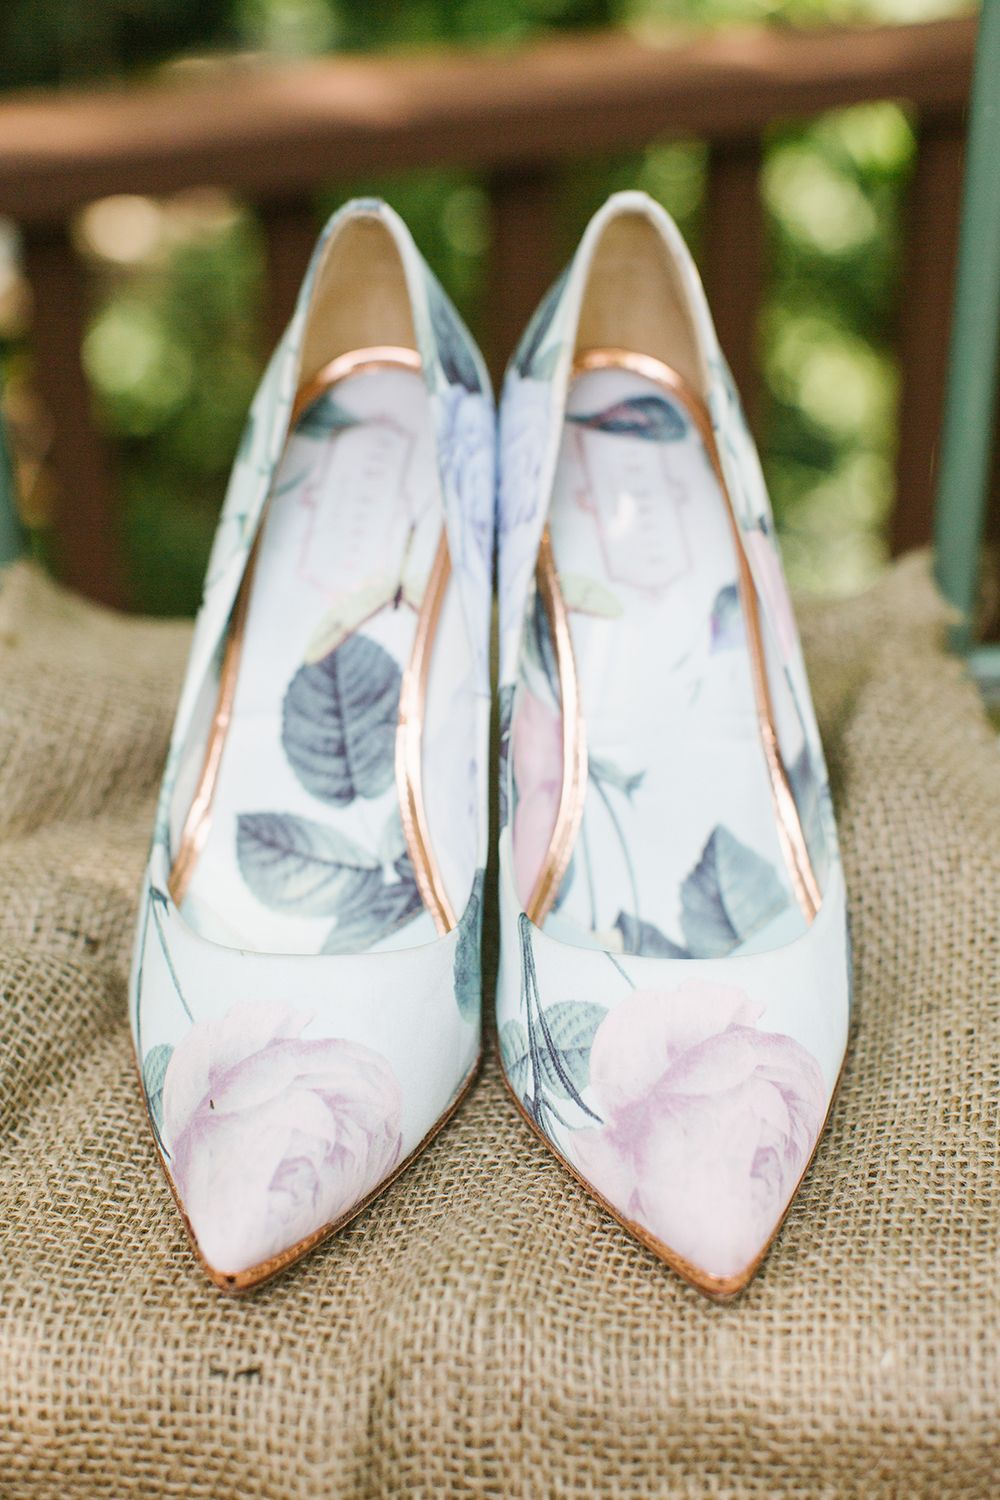 eaba925c1b7 floral wedding shoes - http   ruffledblog.com high-school-